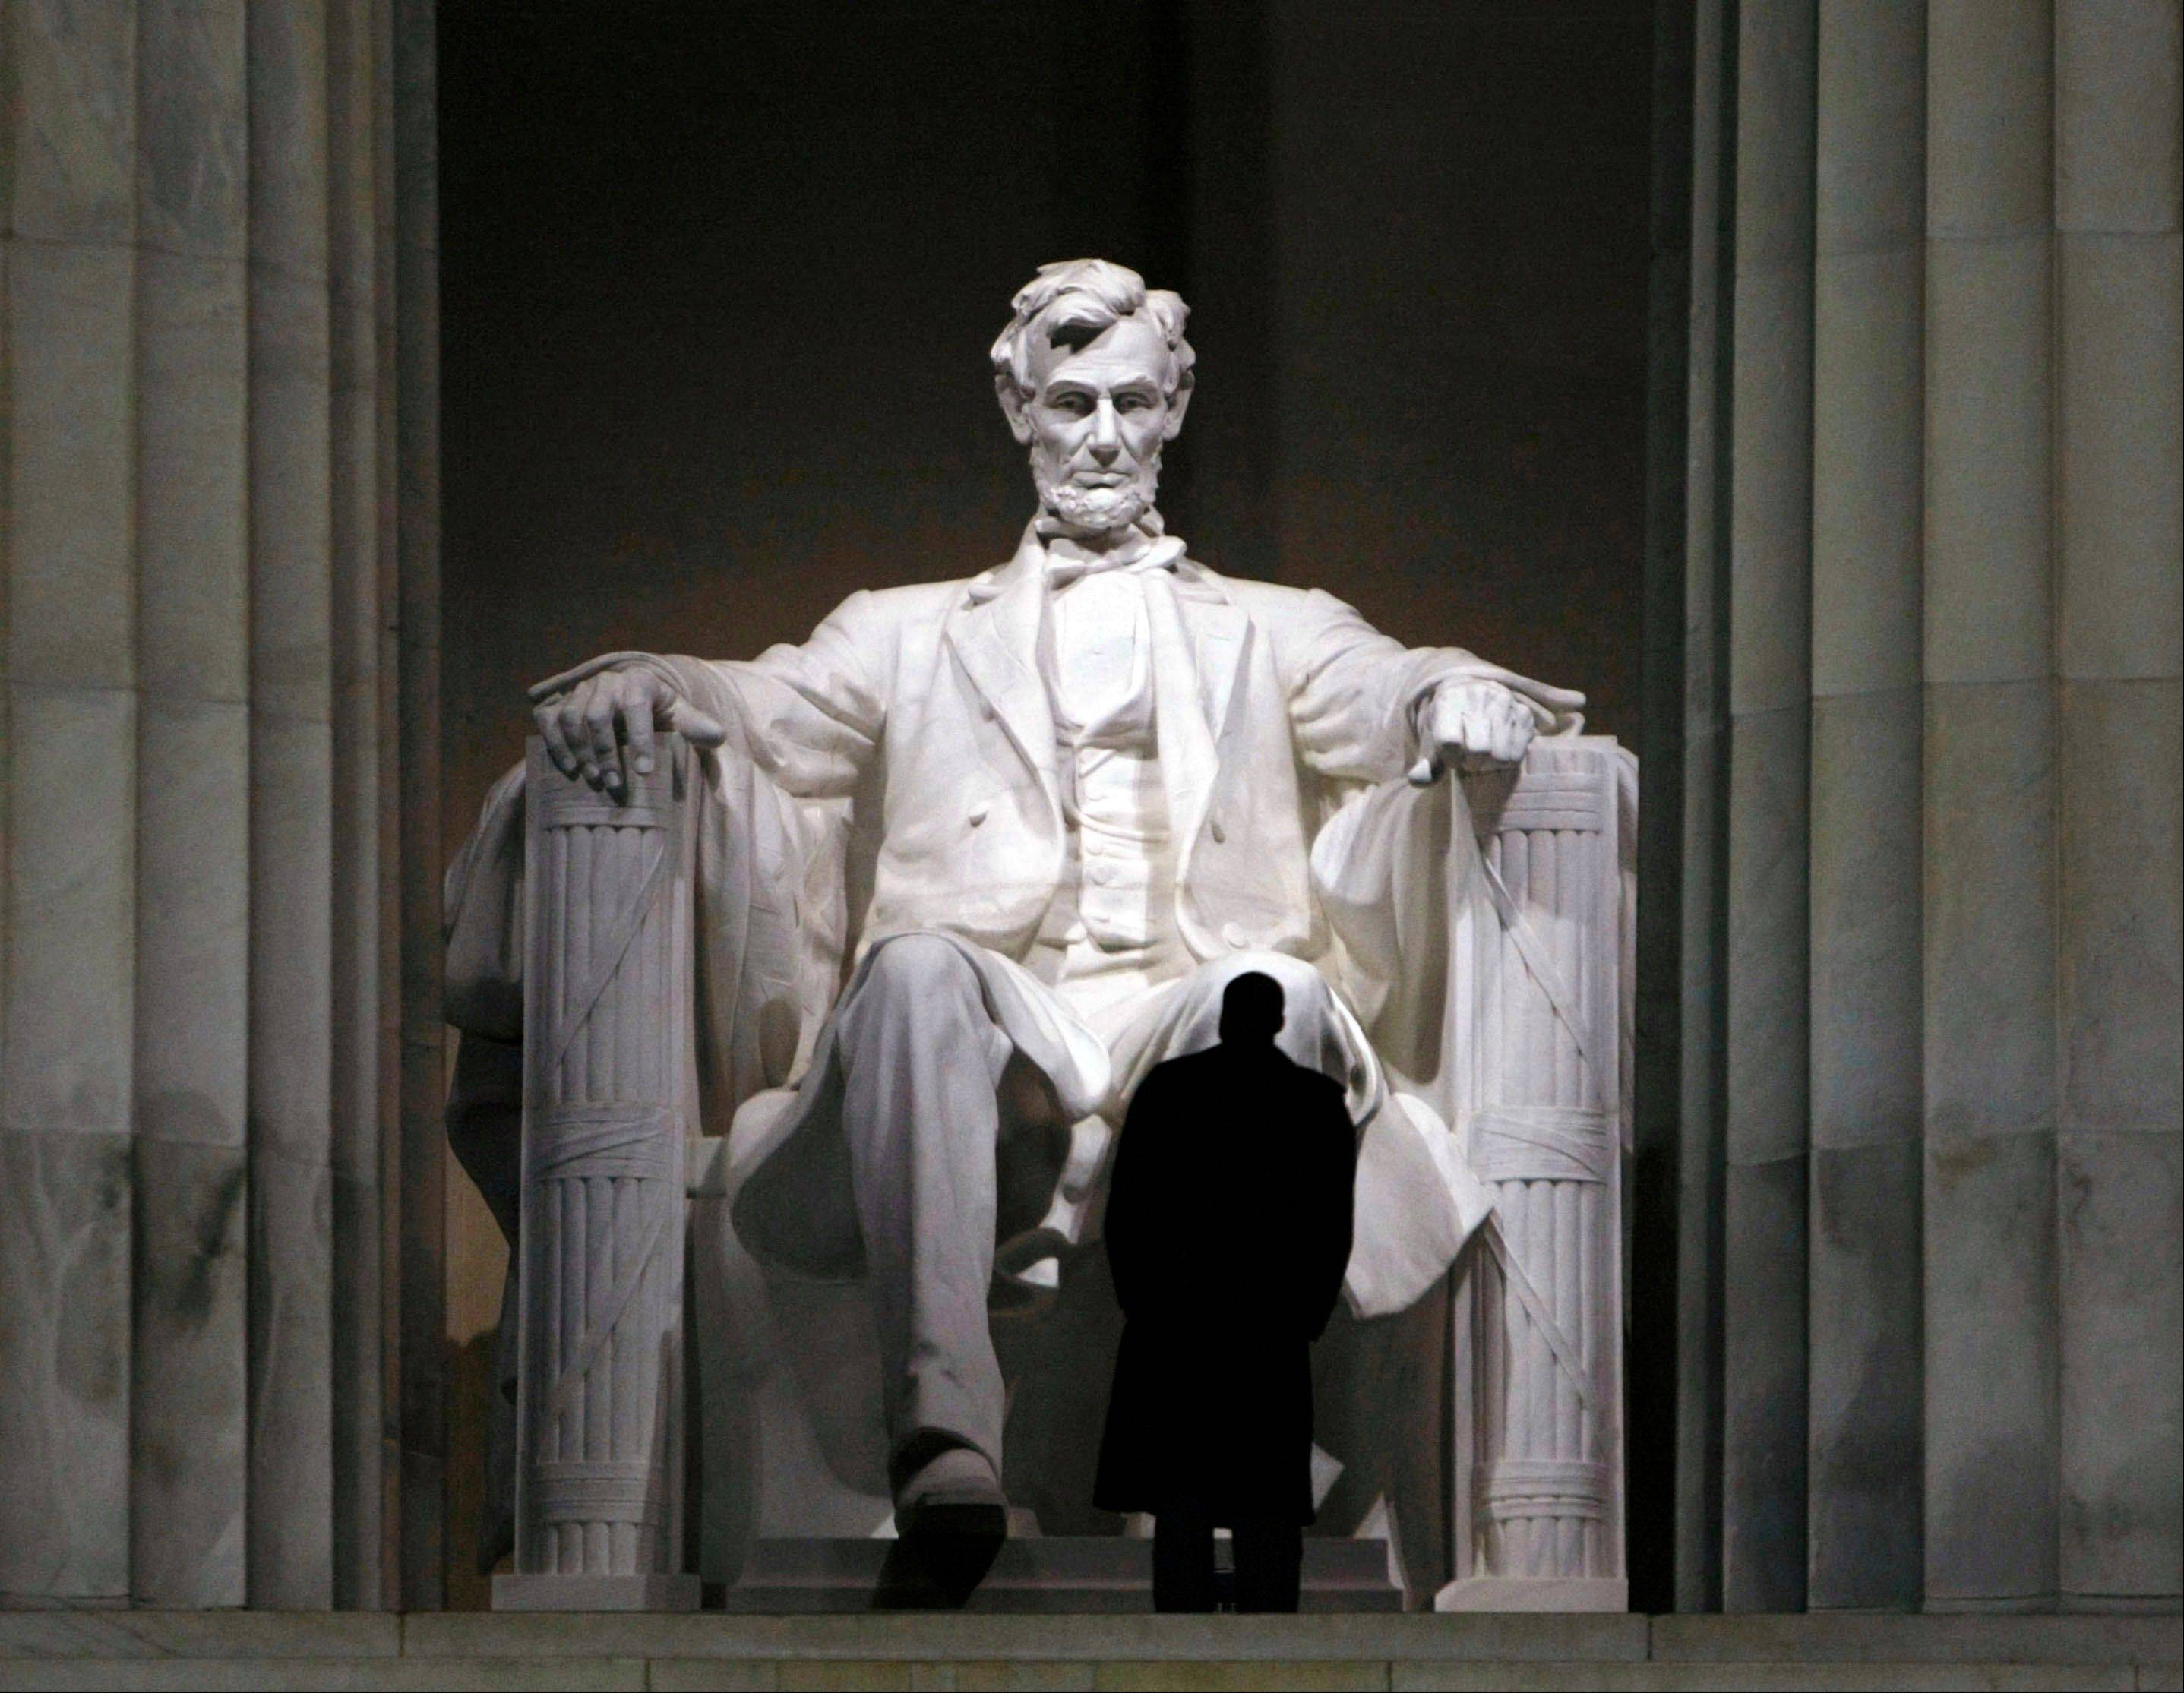 A Secret Service agent stands watch while President-elect Barack Obama, not shown, visits the Lincoln Memorial with his family in Washington. The 16th president was one of America's most admired, rising from humble roots in a frontier cabin to become a self-educated lawyer and brilliant politician.